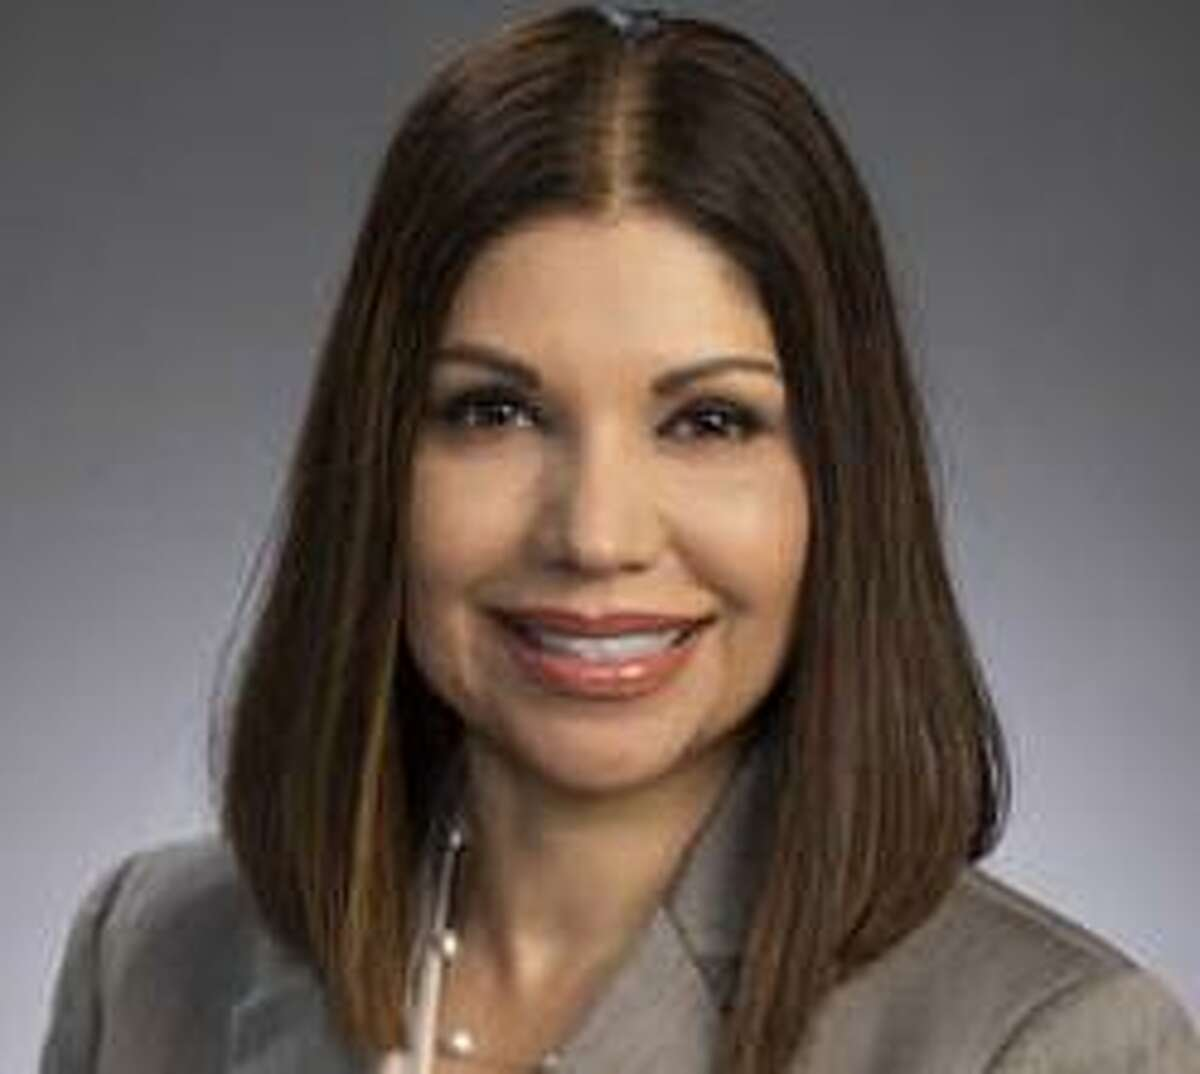 Melissa Gonzalez took over as the newly appointed President at Lone Star College-Kingwood this summer.